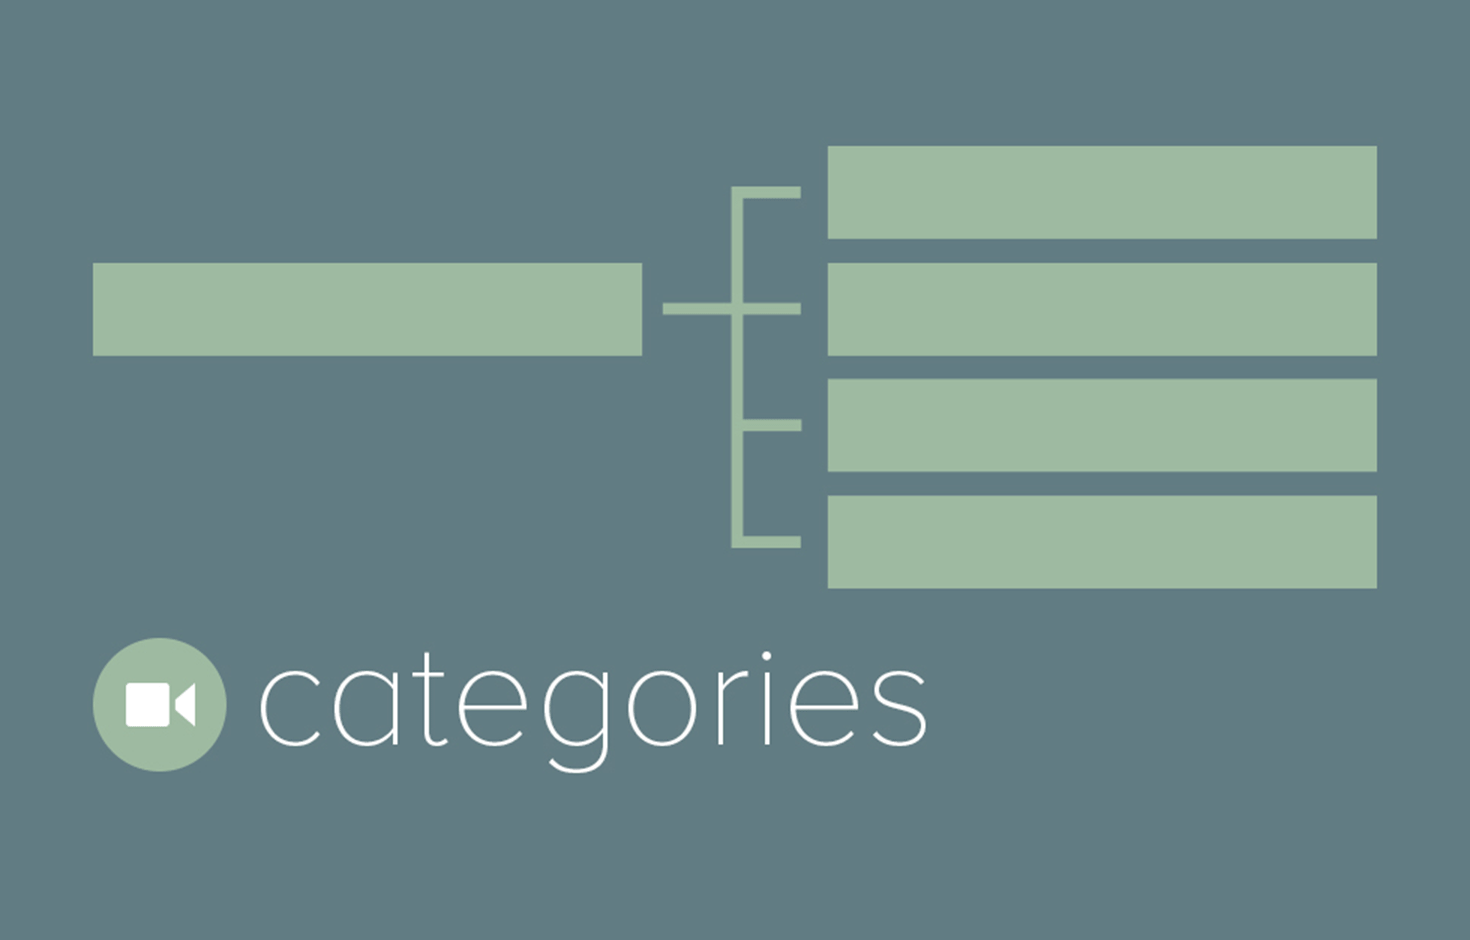 Define Categories